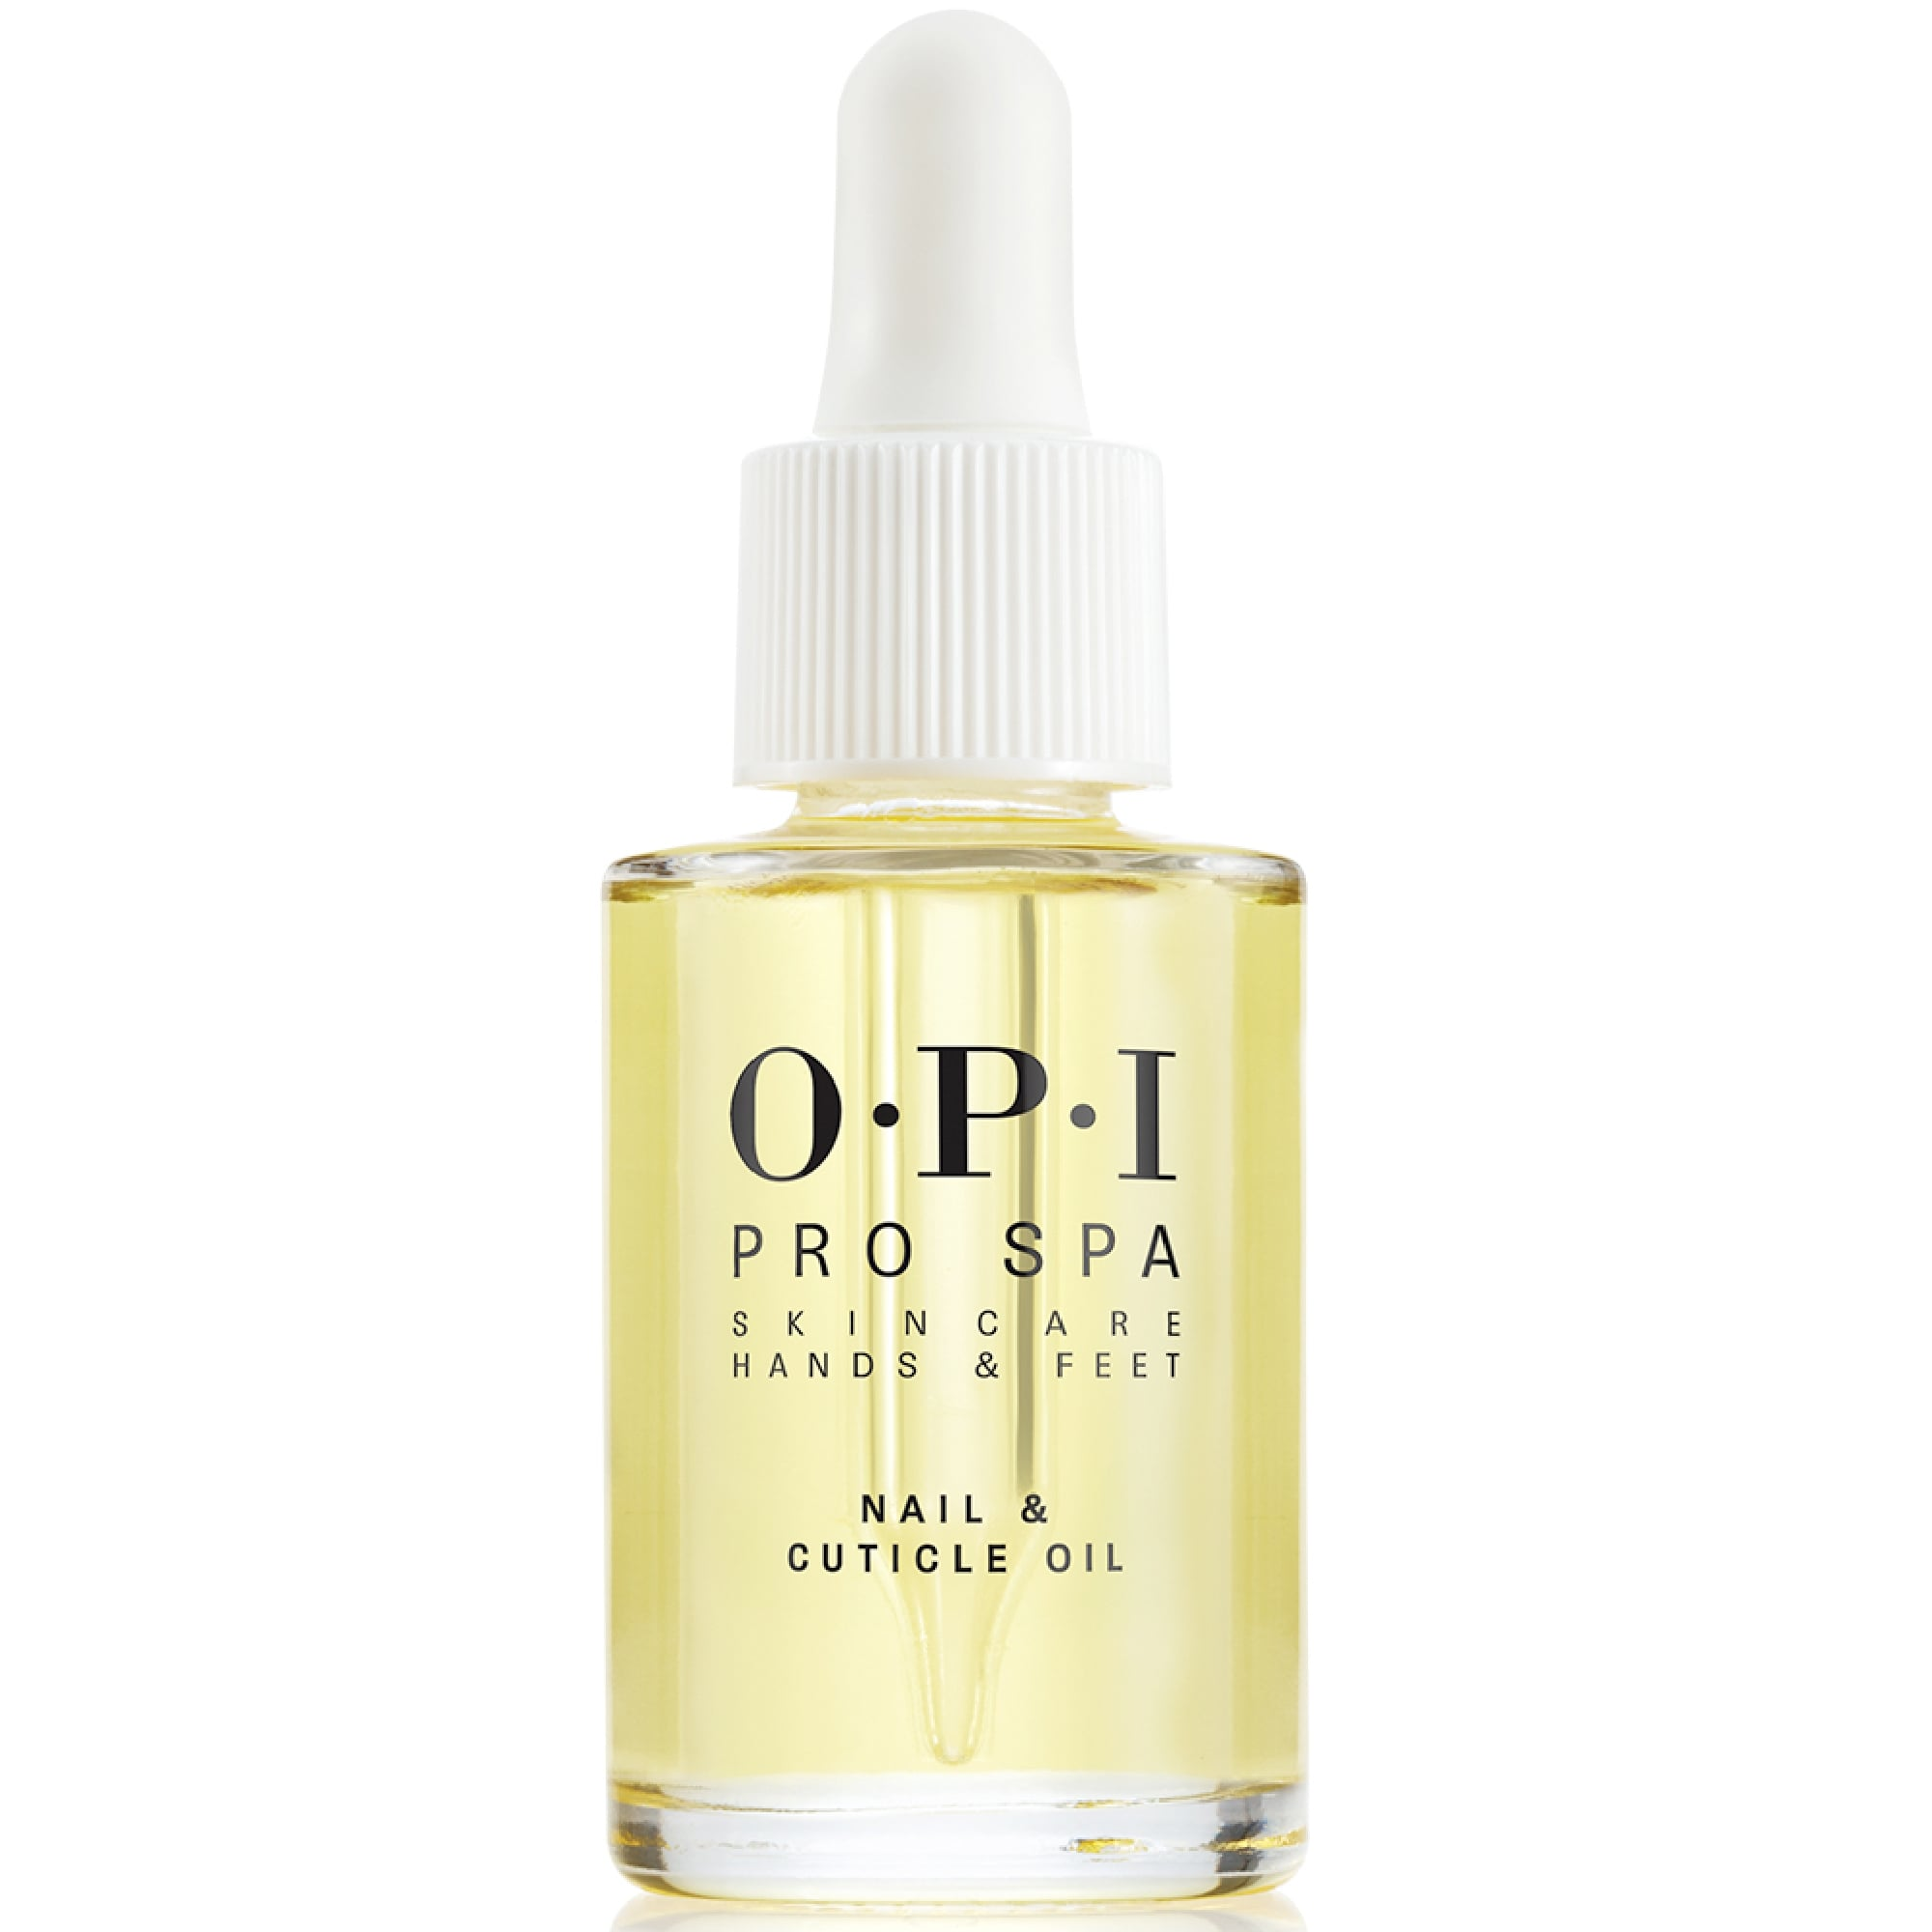 opi pro spa nail cuticle oil to go hand nagel beautyvit huidverbetering dreef 10 breda